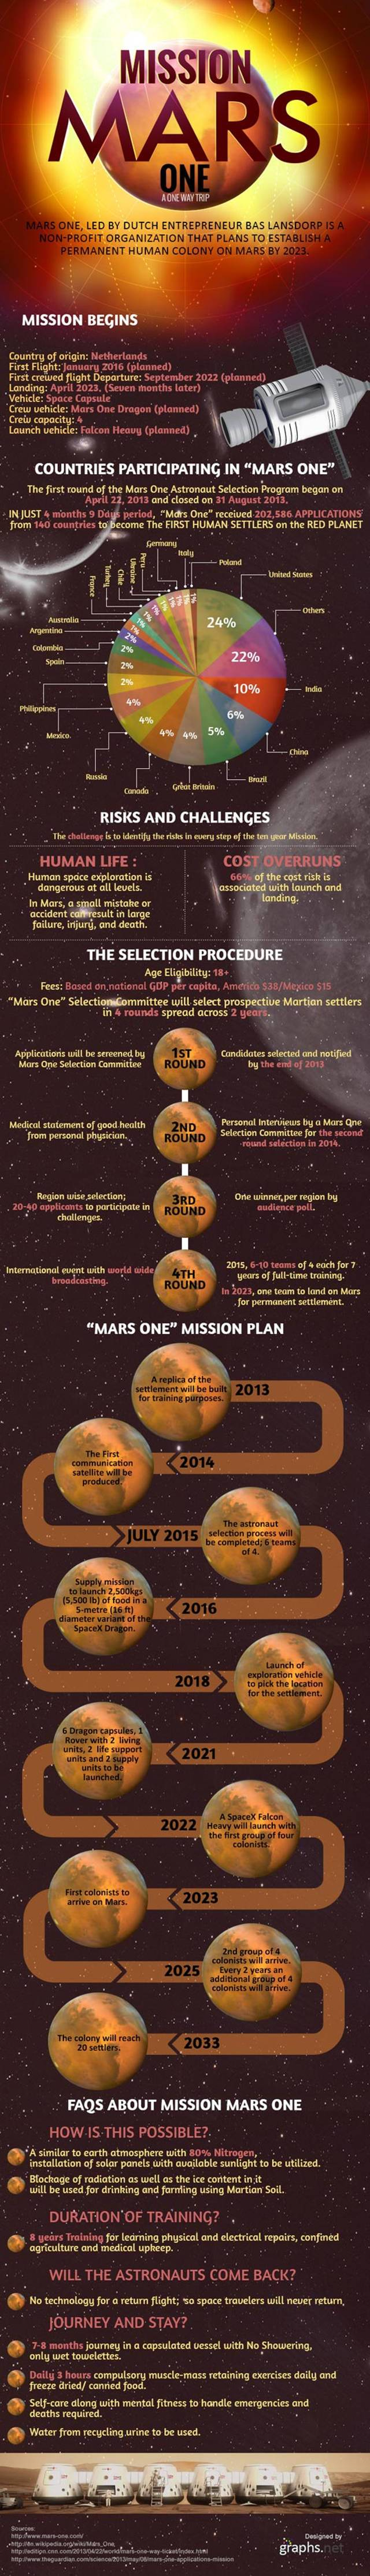 Mission Mars One infographic (2)